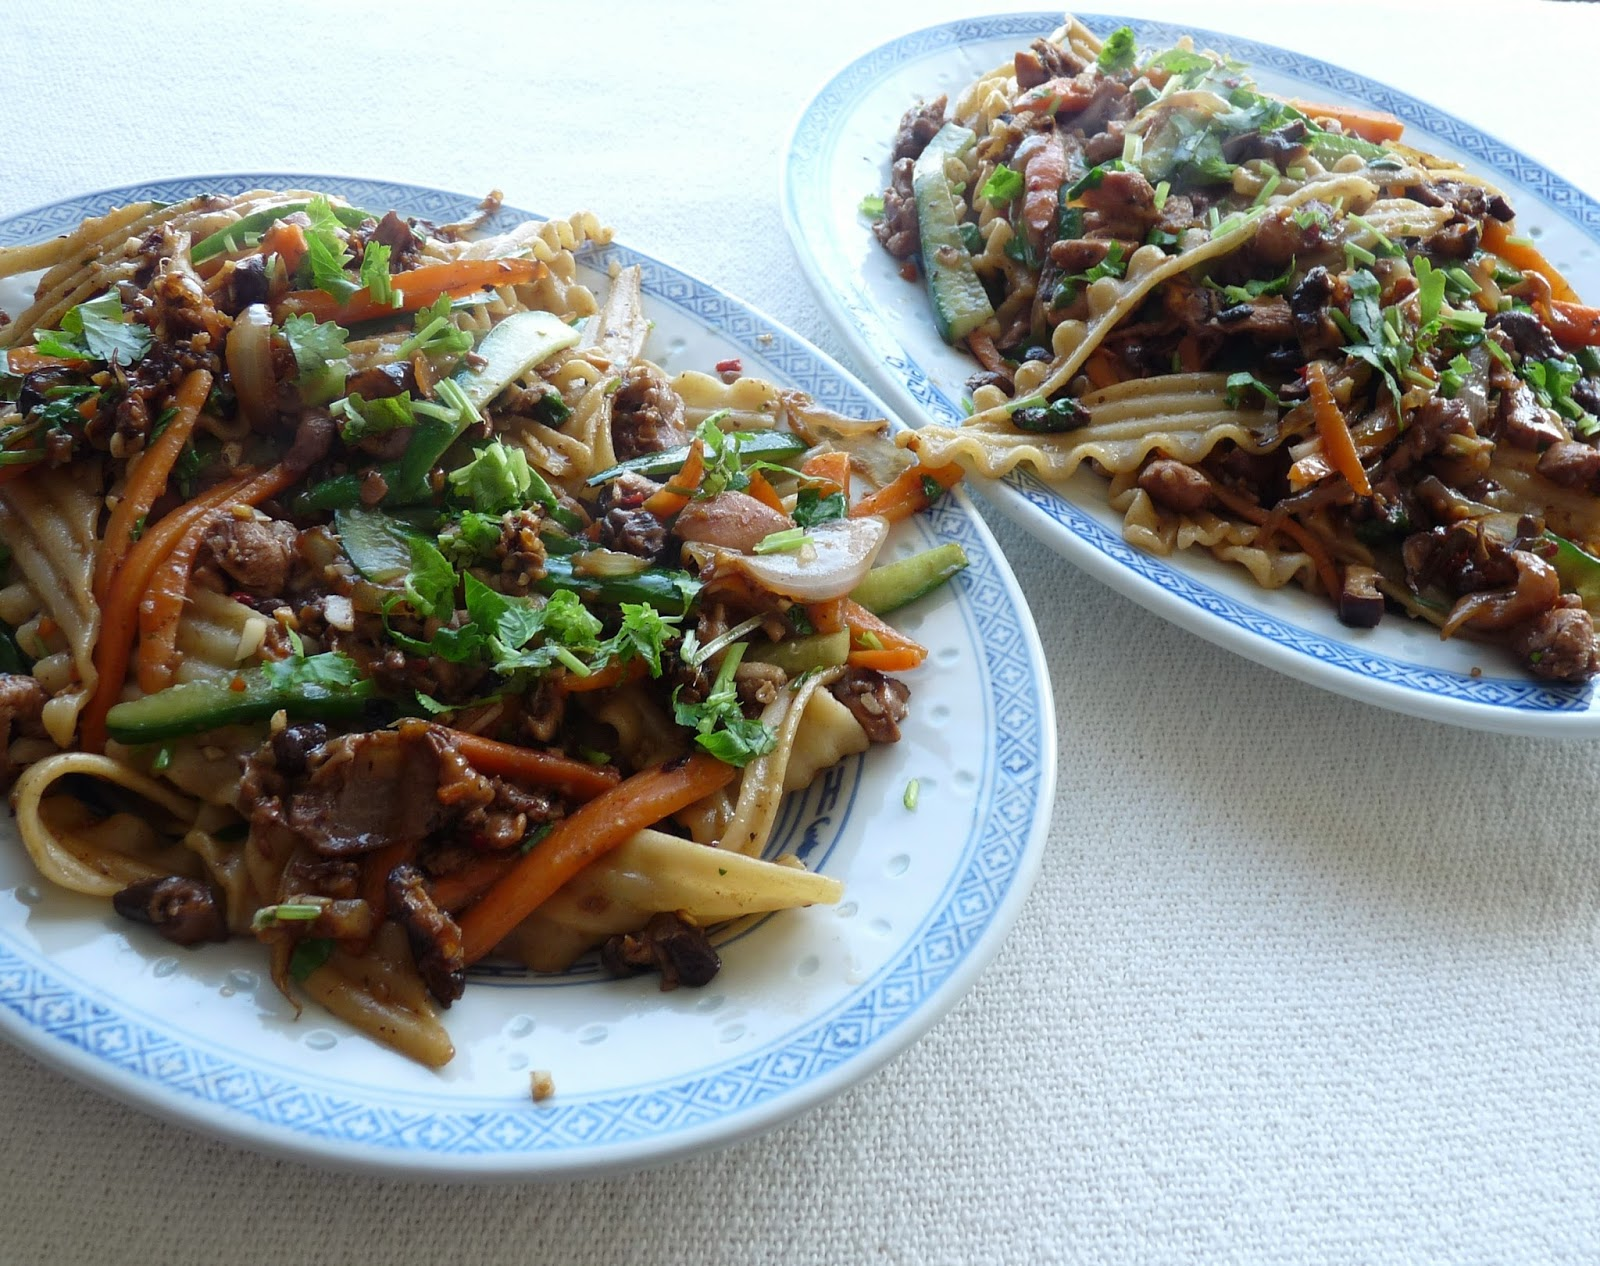 Seasonal Ontario Food: Spicy Chinese Style Noodles